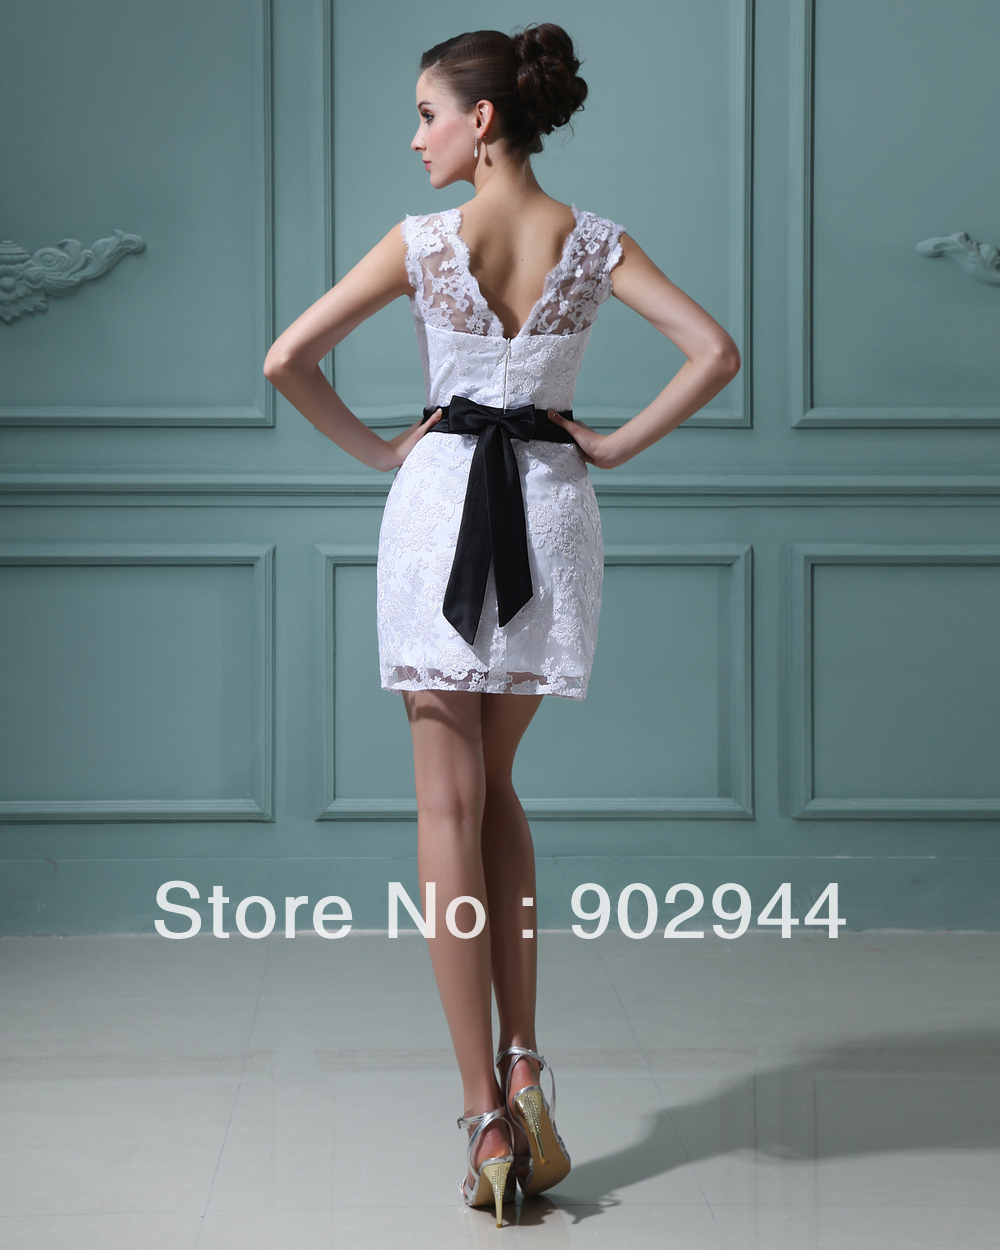 White dress with black lace belt